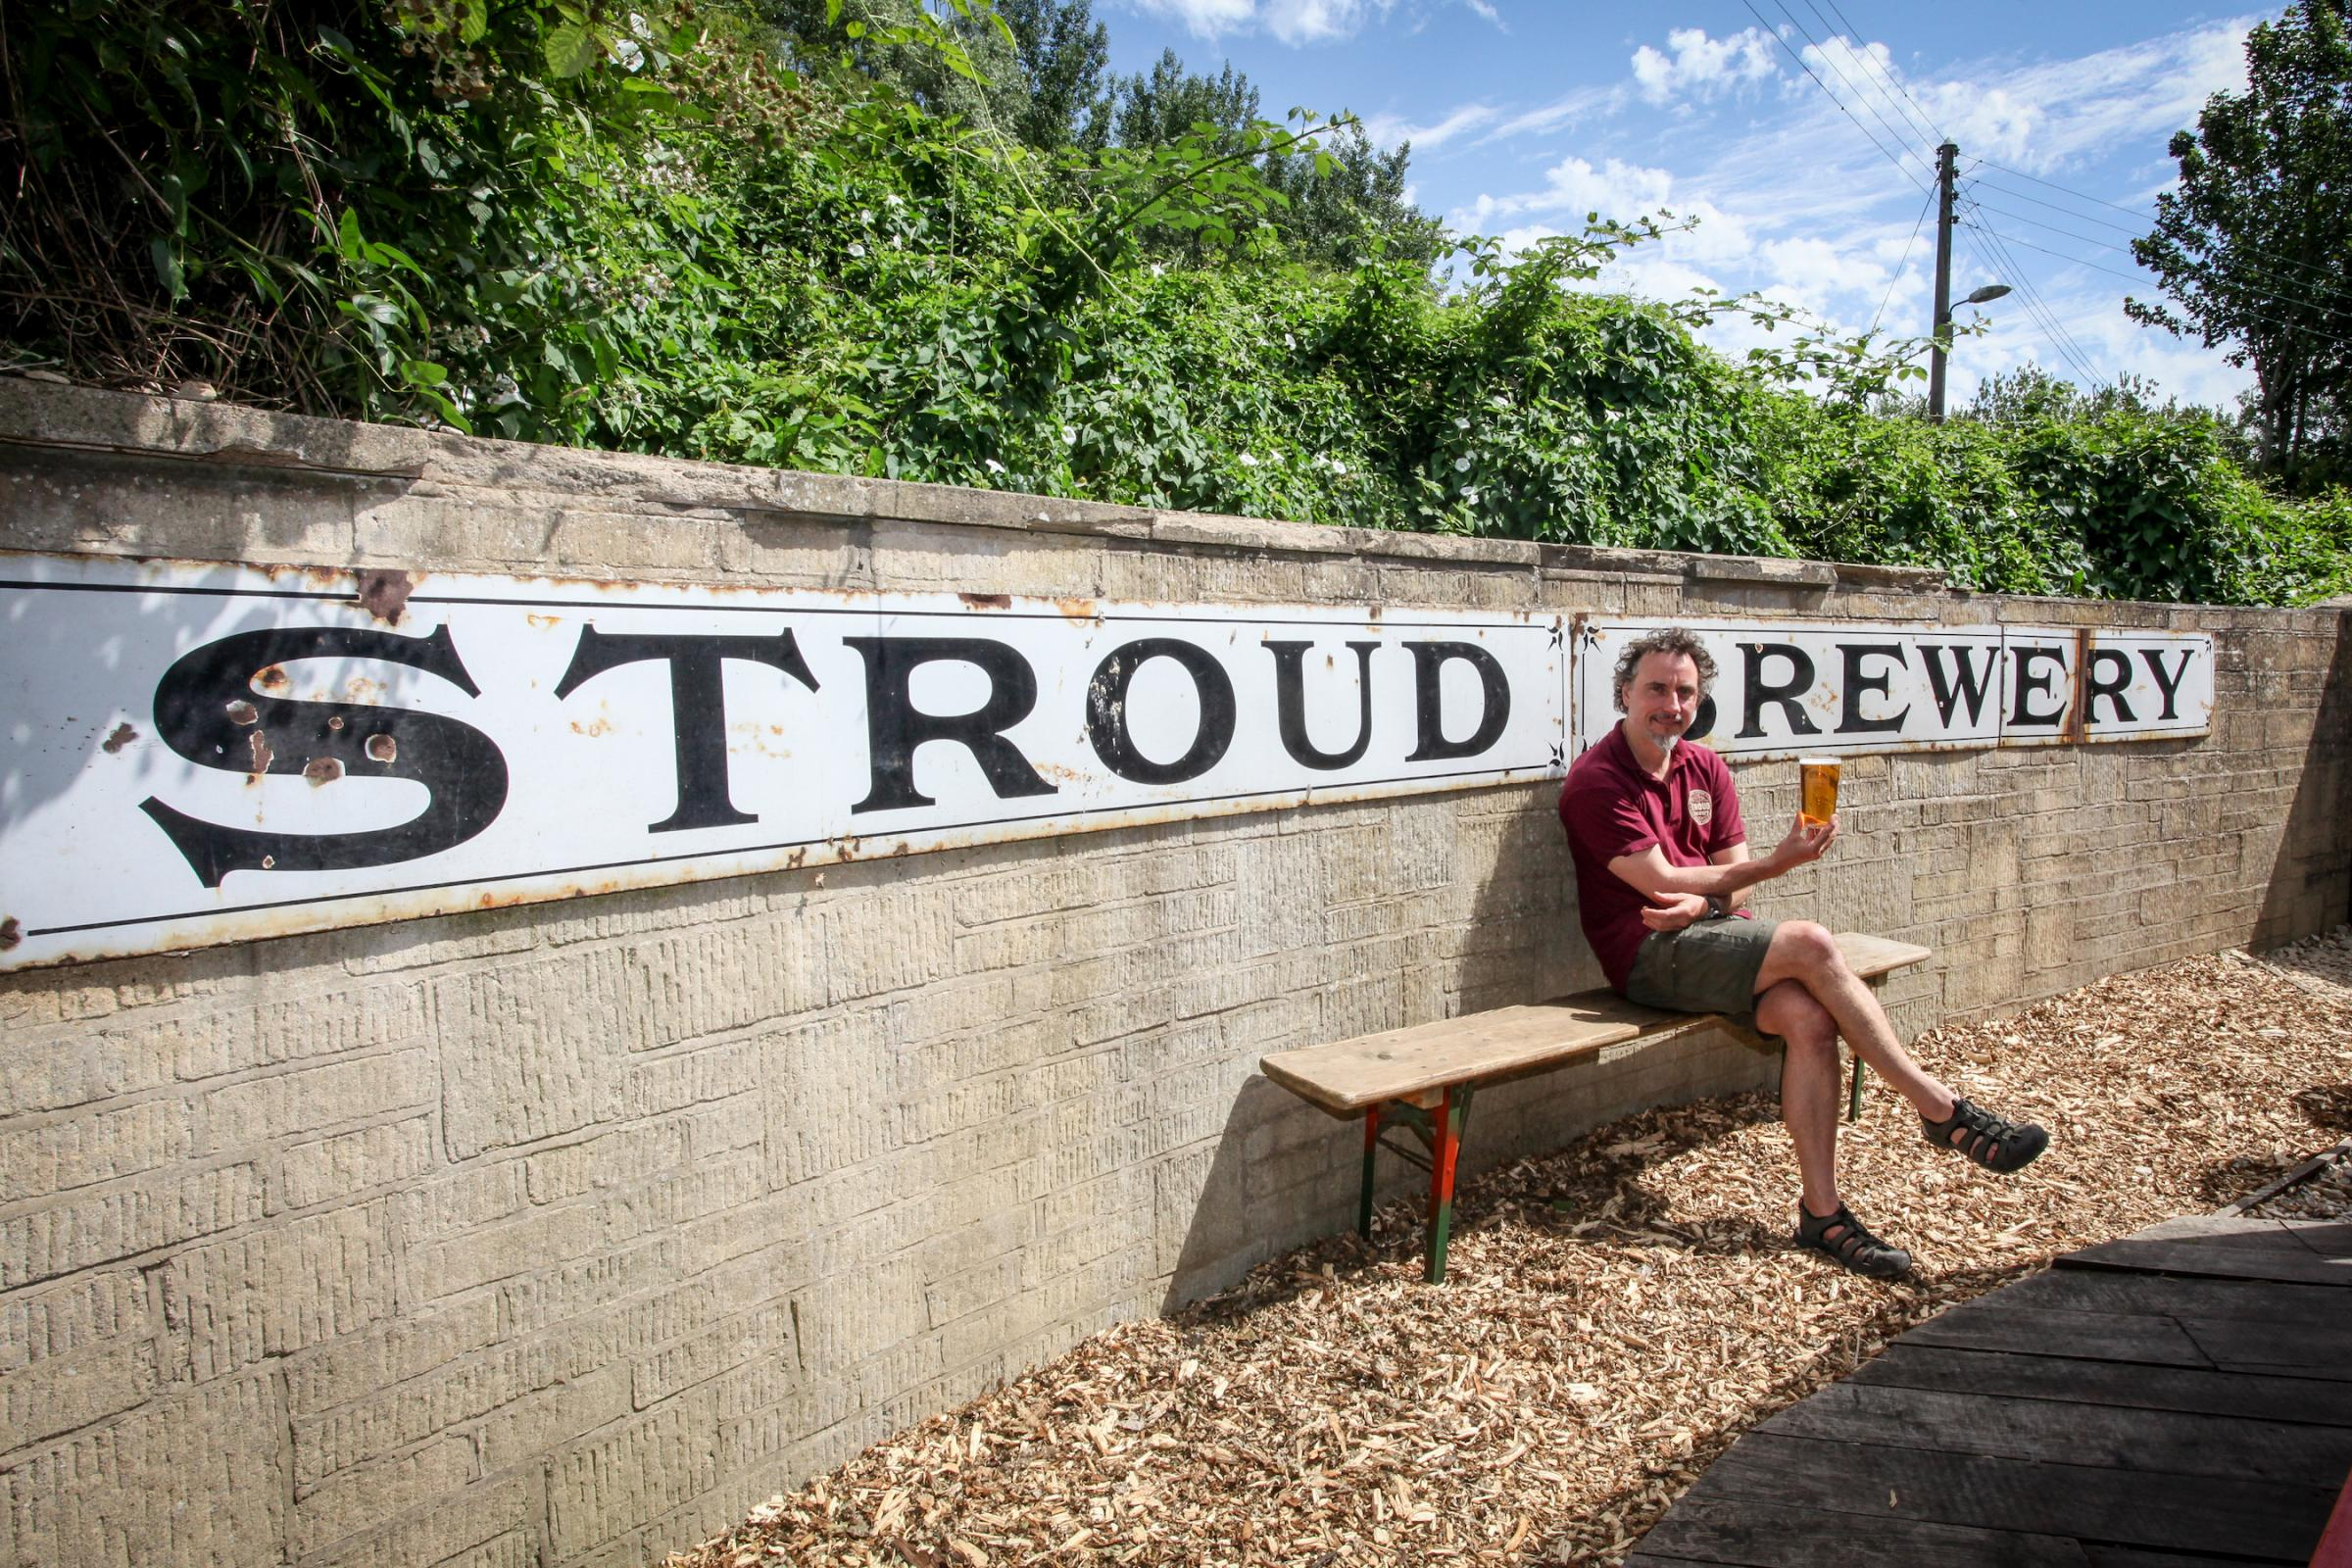 Greg Pilley of Stroud Brewery who is hoping to raise the money to support the growth of the business